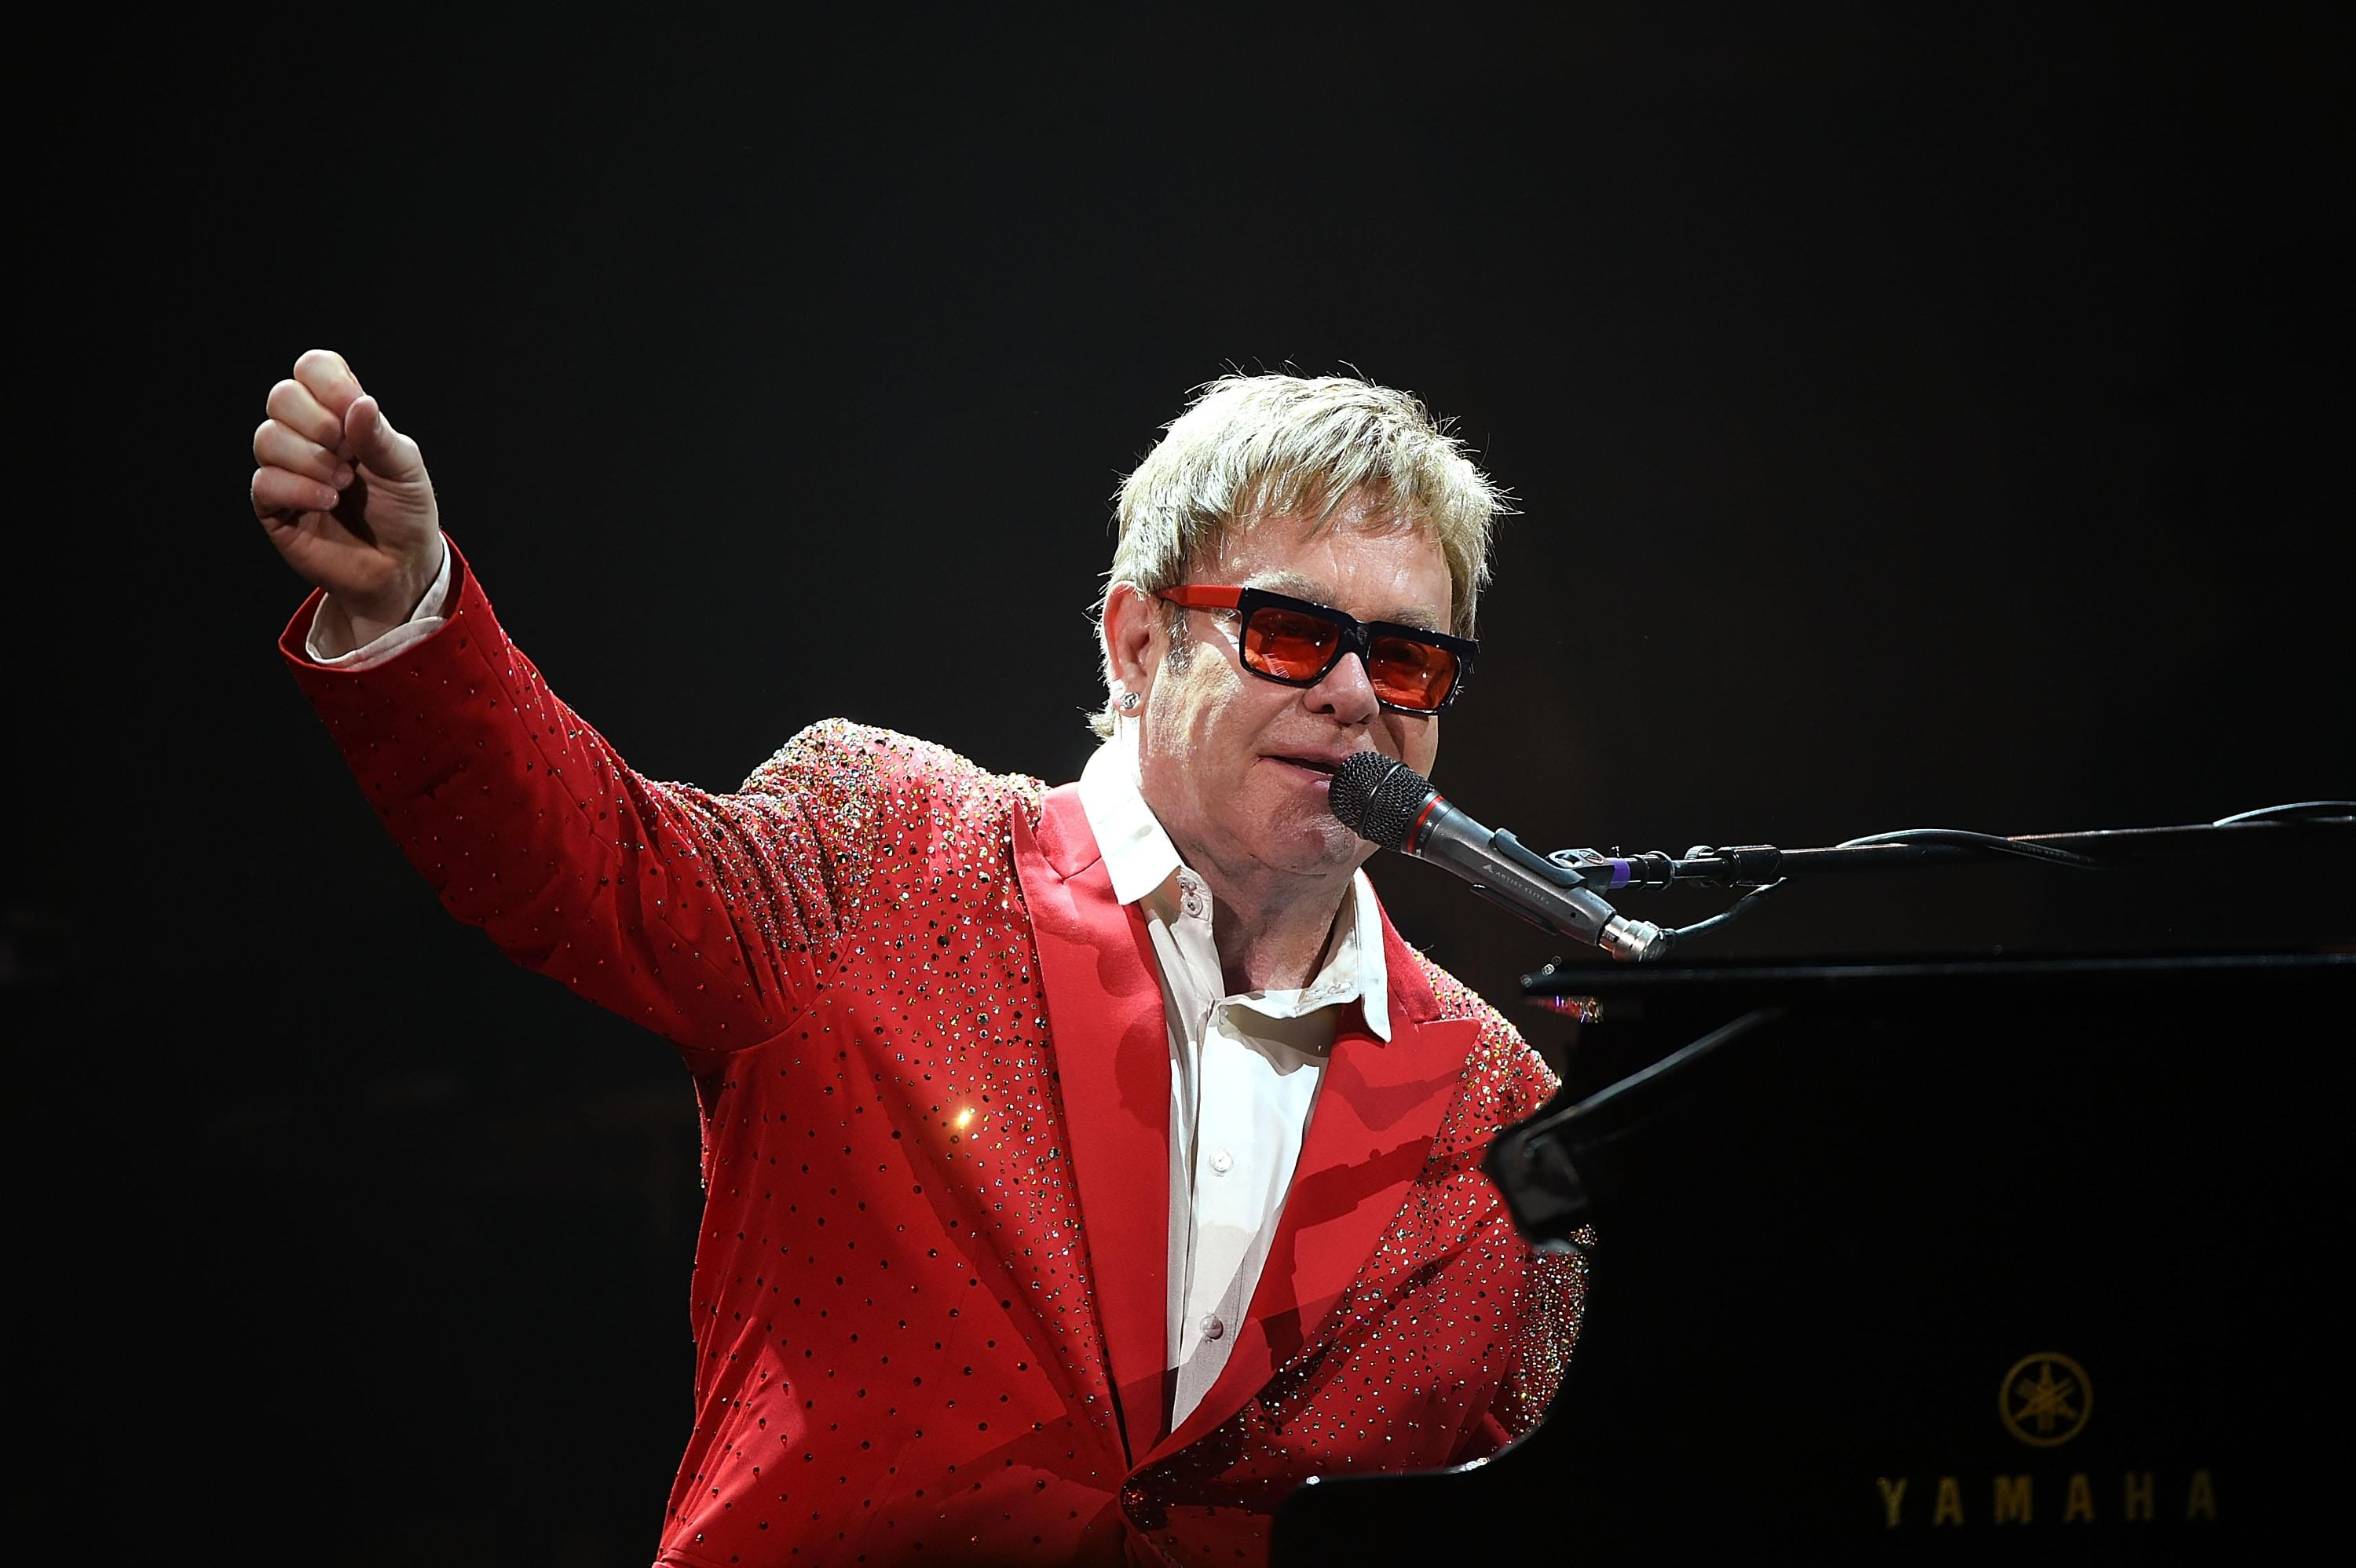 Elton John, The Police and Eurythmics recordings enter the Grammy Hall of Fame